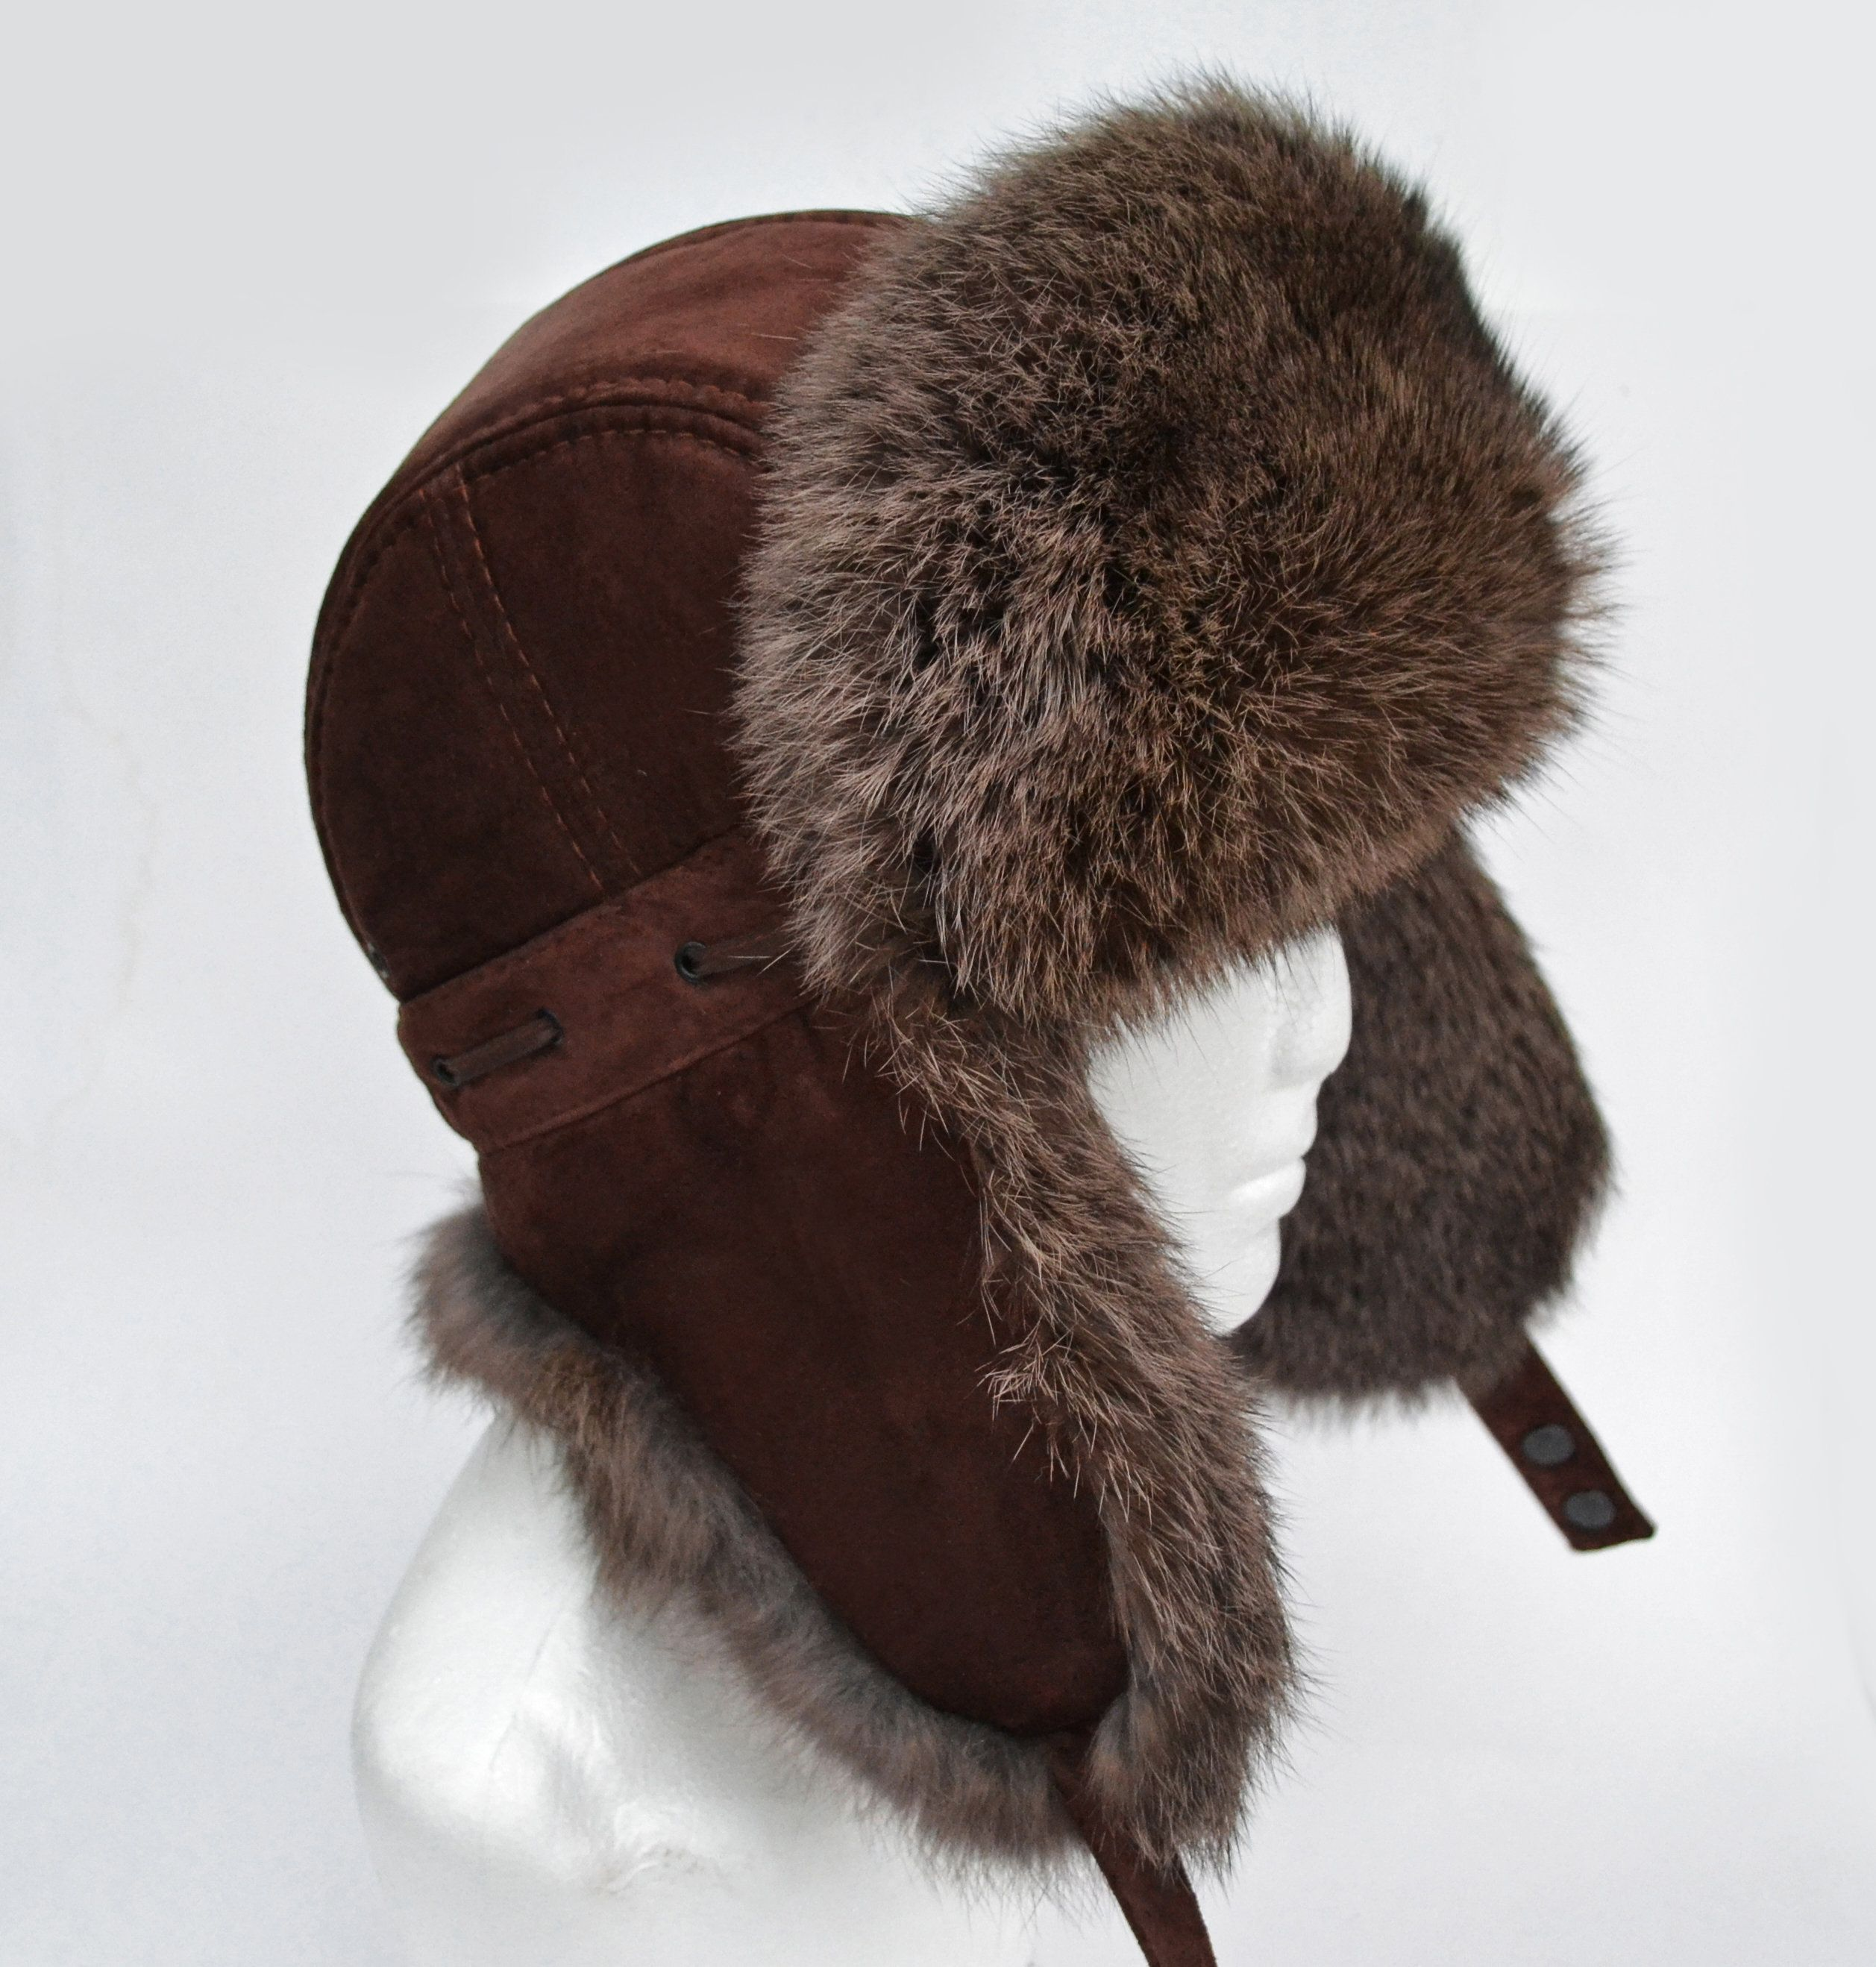 By Order Real Suede Leather Ear Flap Hat Men Real Fur Hat Etsy Ear Flap Hats Fur Hat Hats For Men